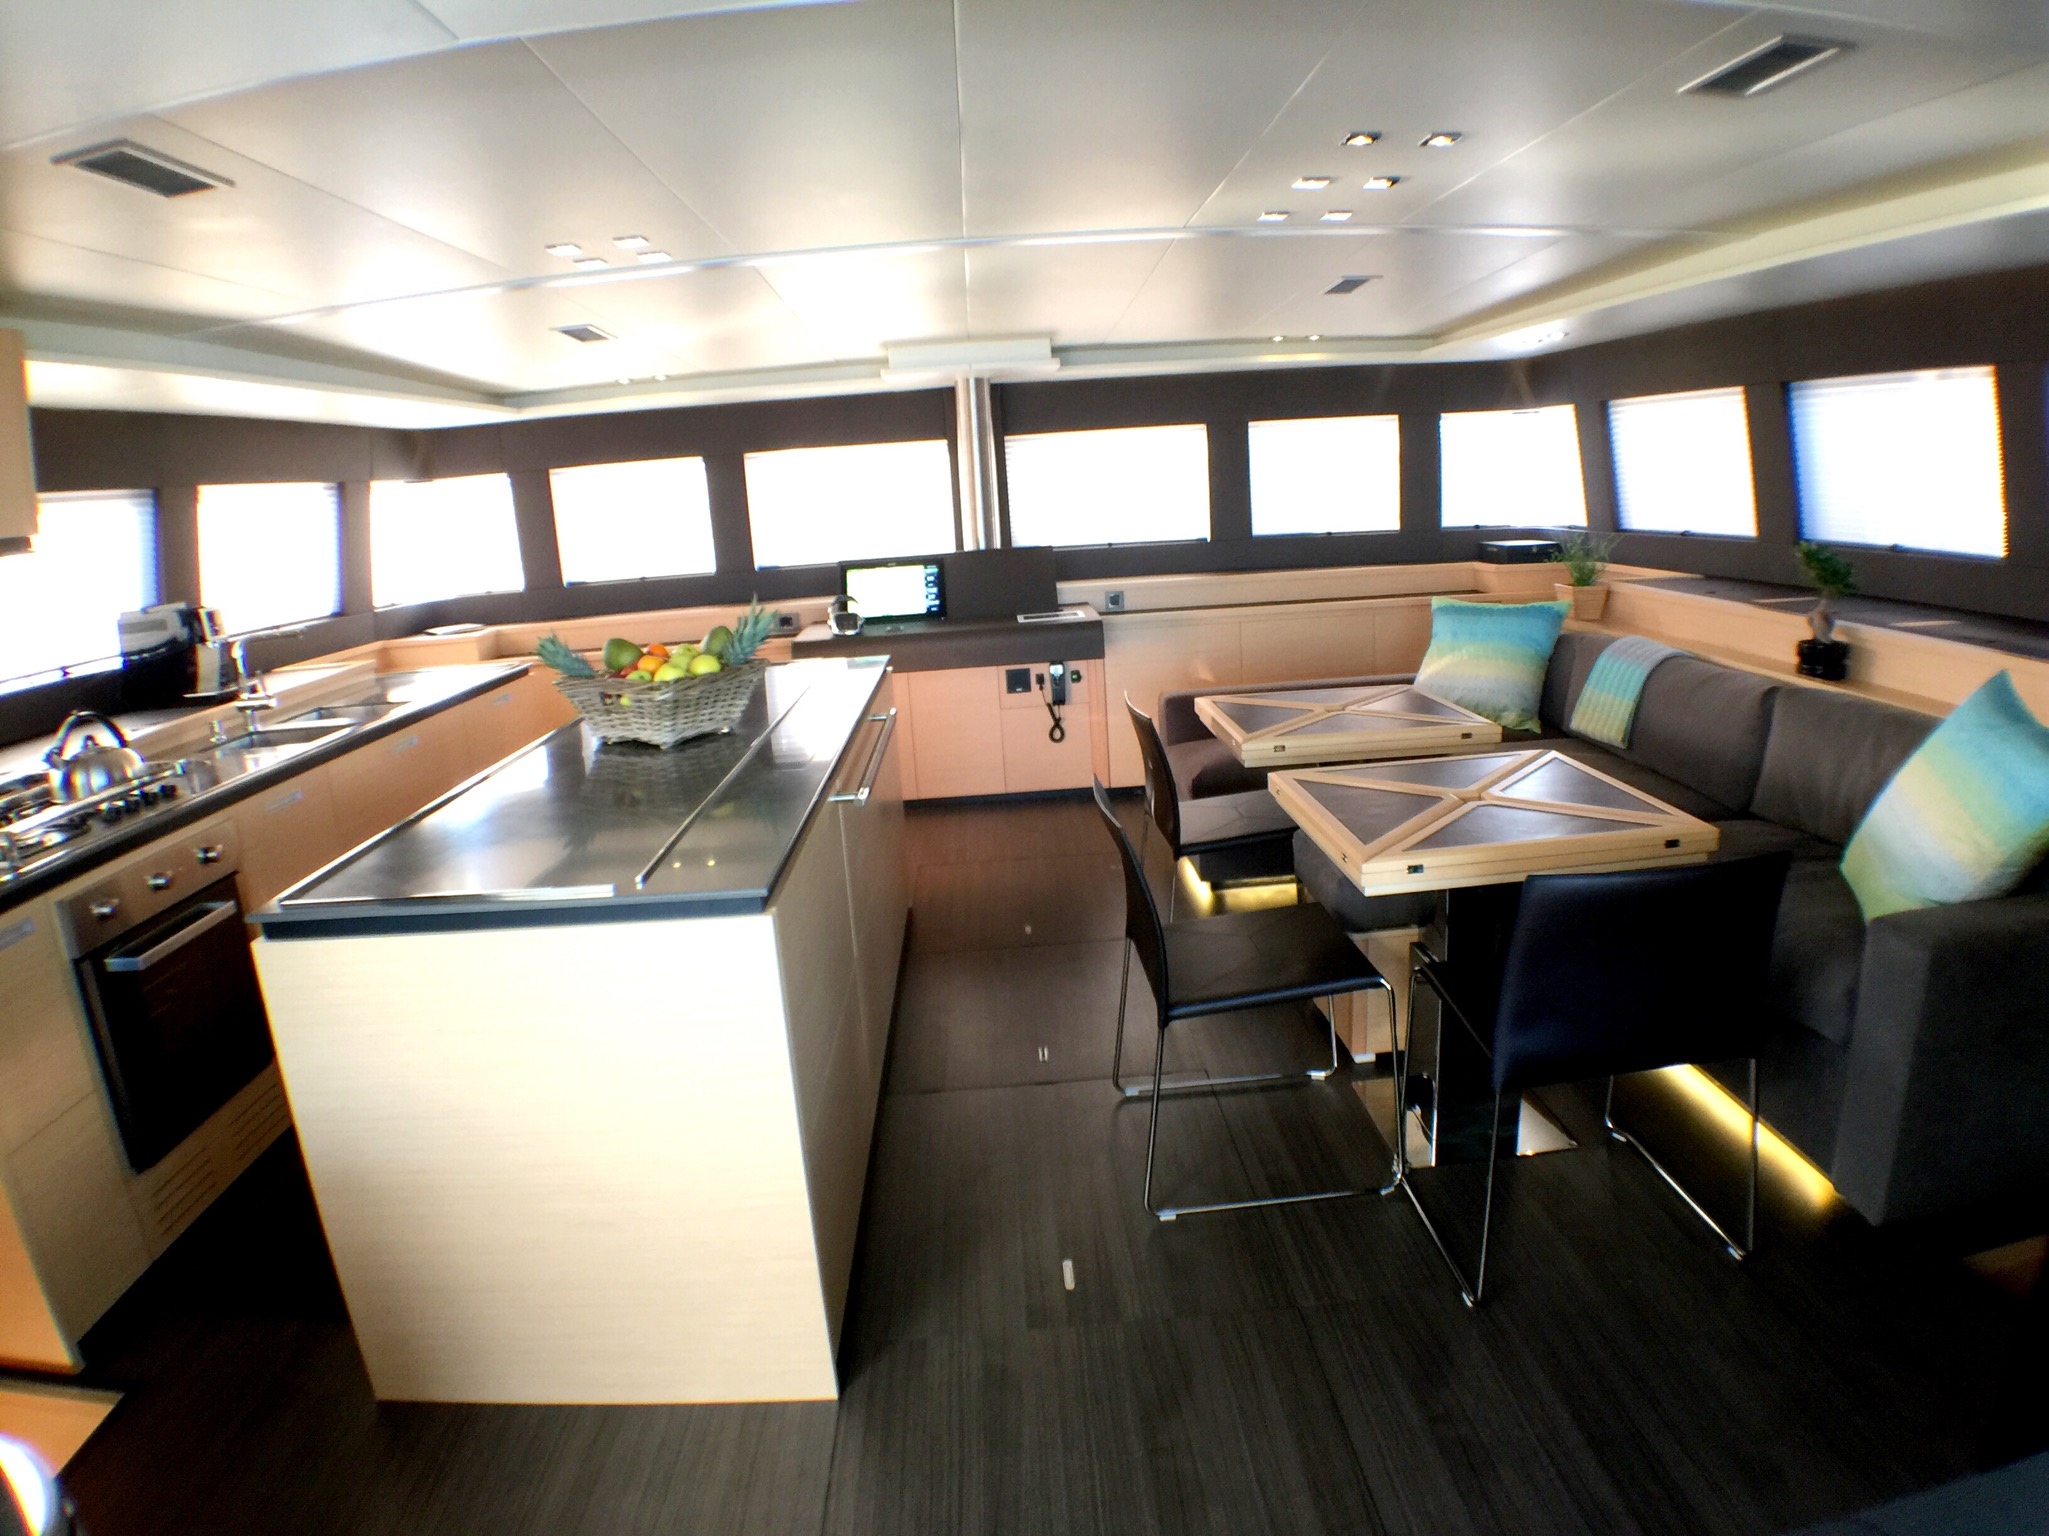 SEAHOME - Salon with galley